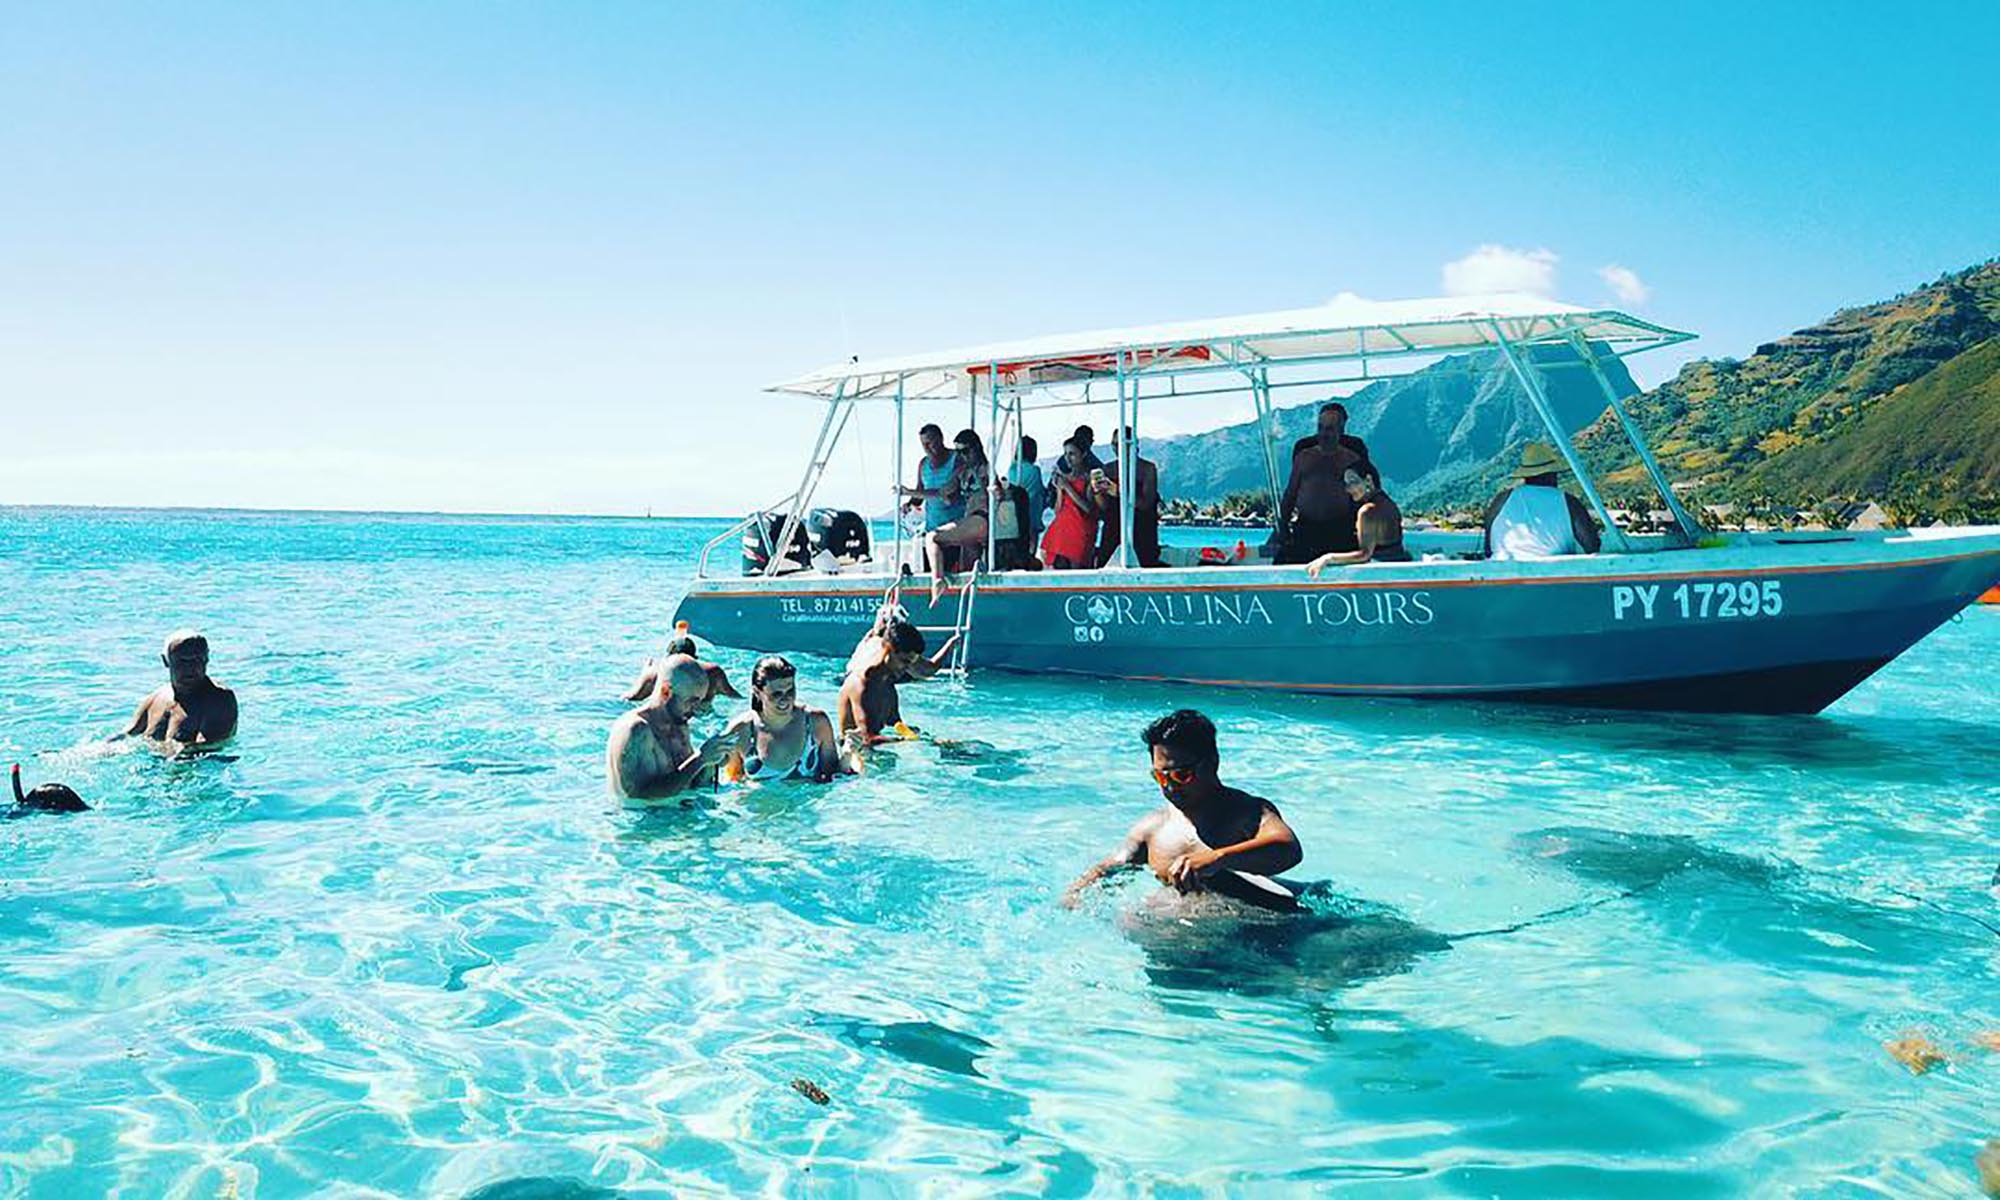 Moorea Lagoon Cruise & Whale Watching with Corallina Tours